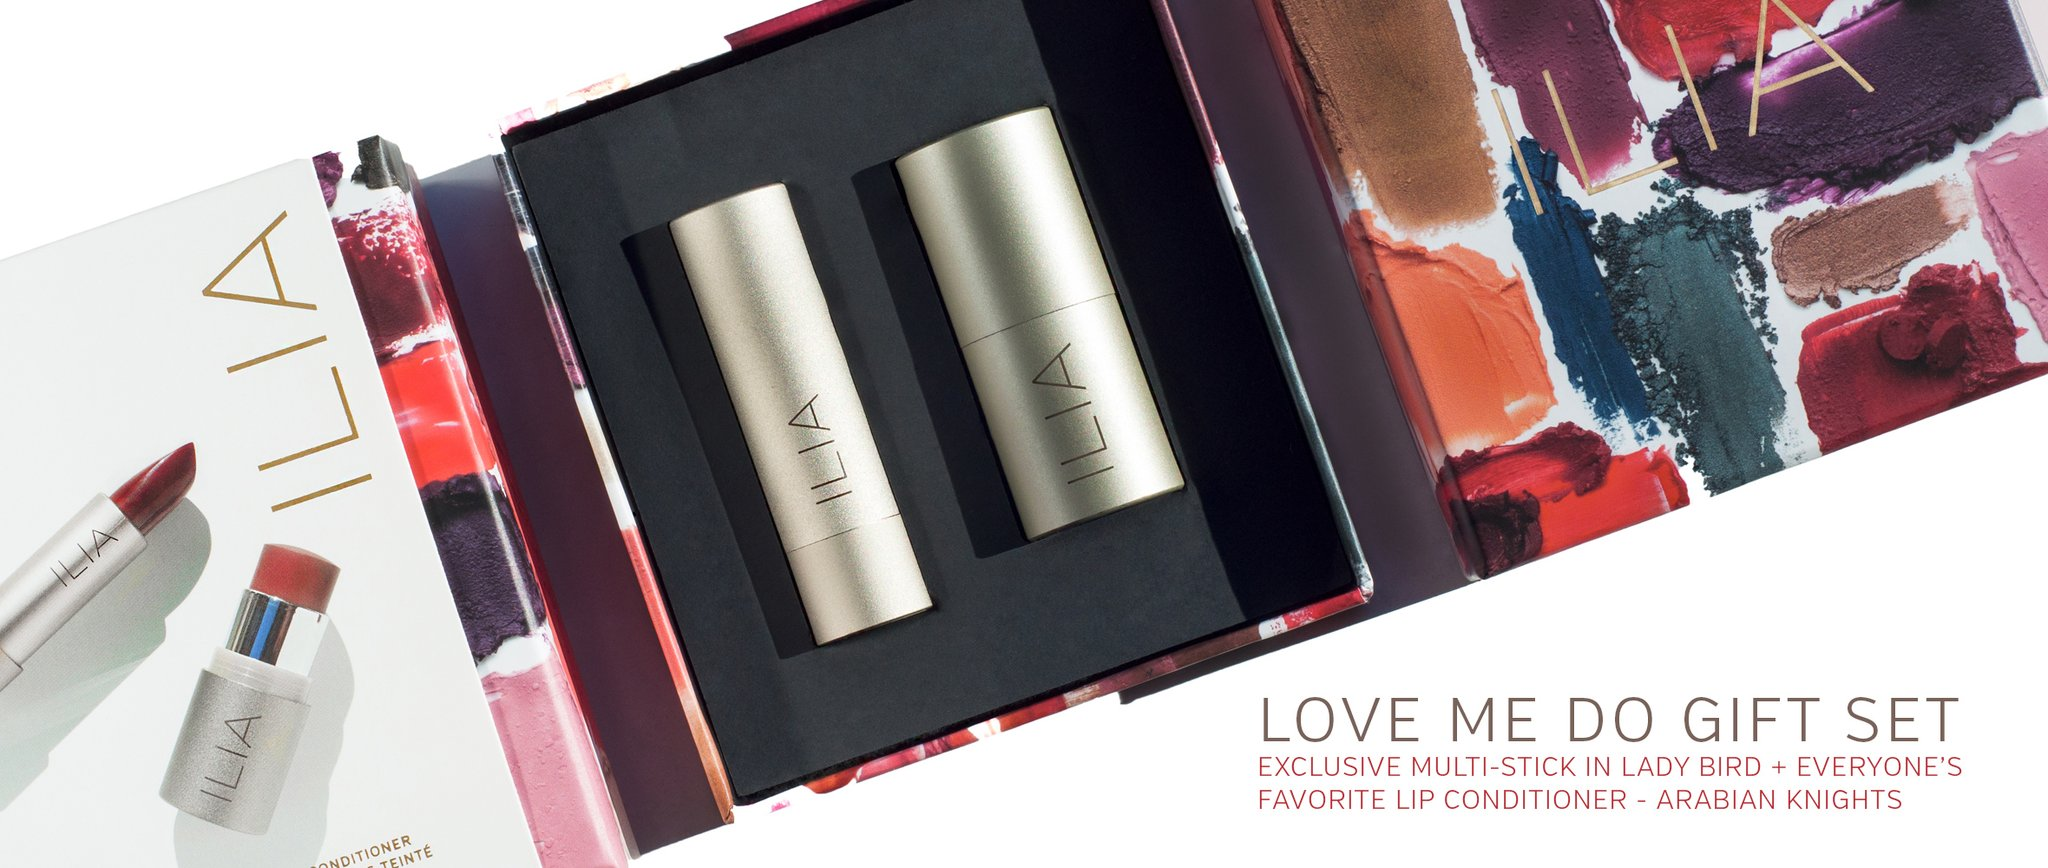 Love Me Do Gift Set